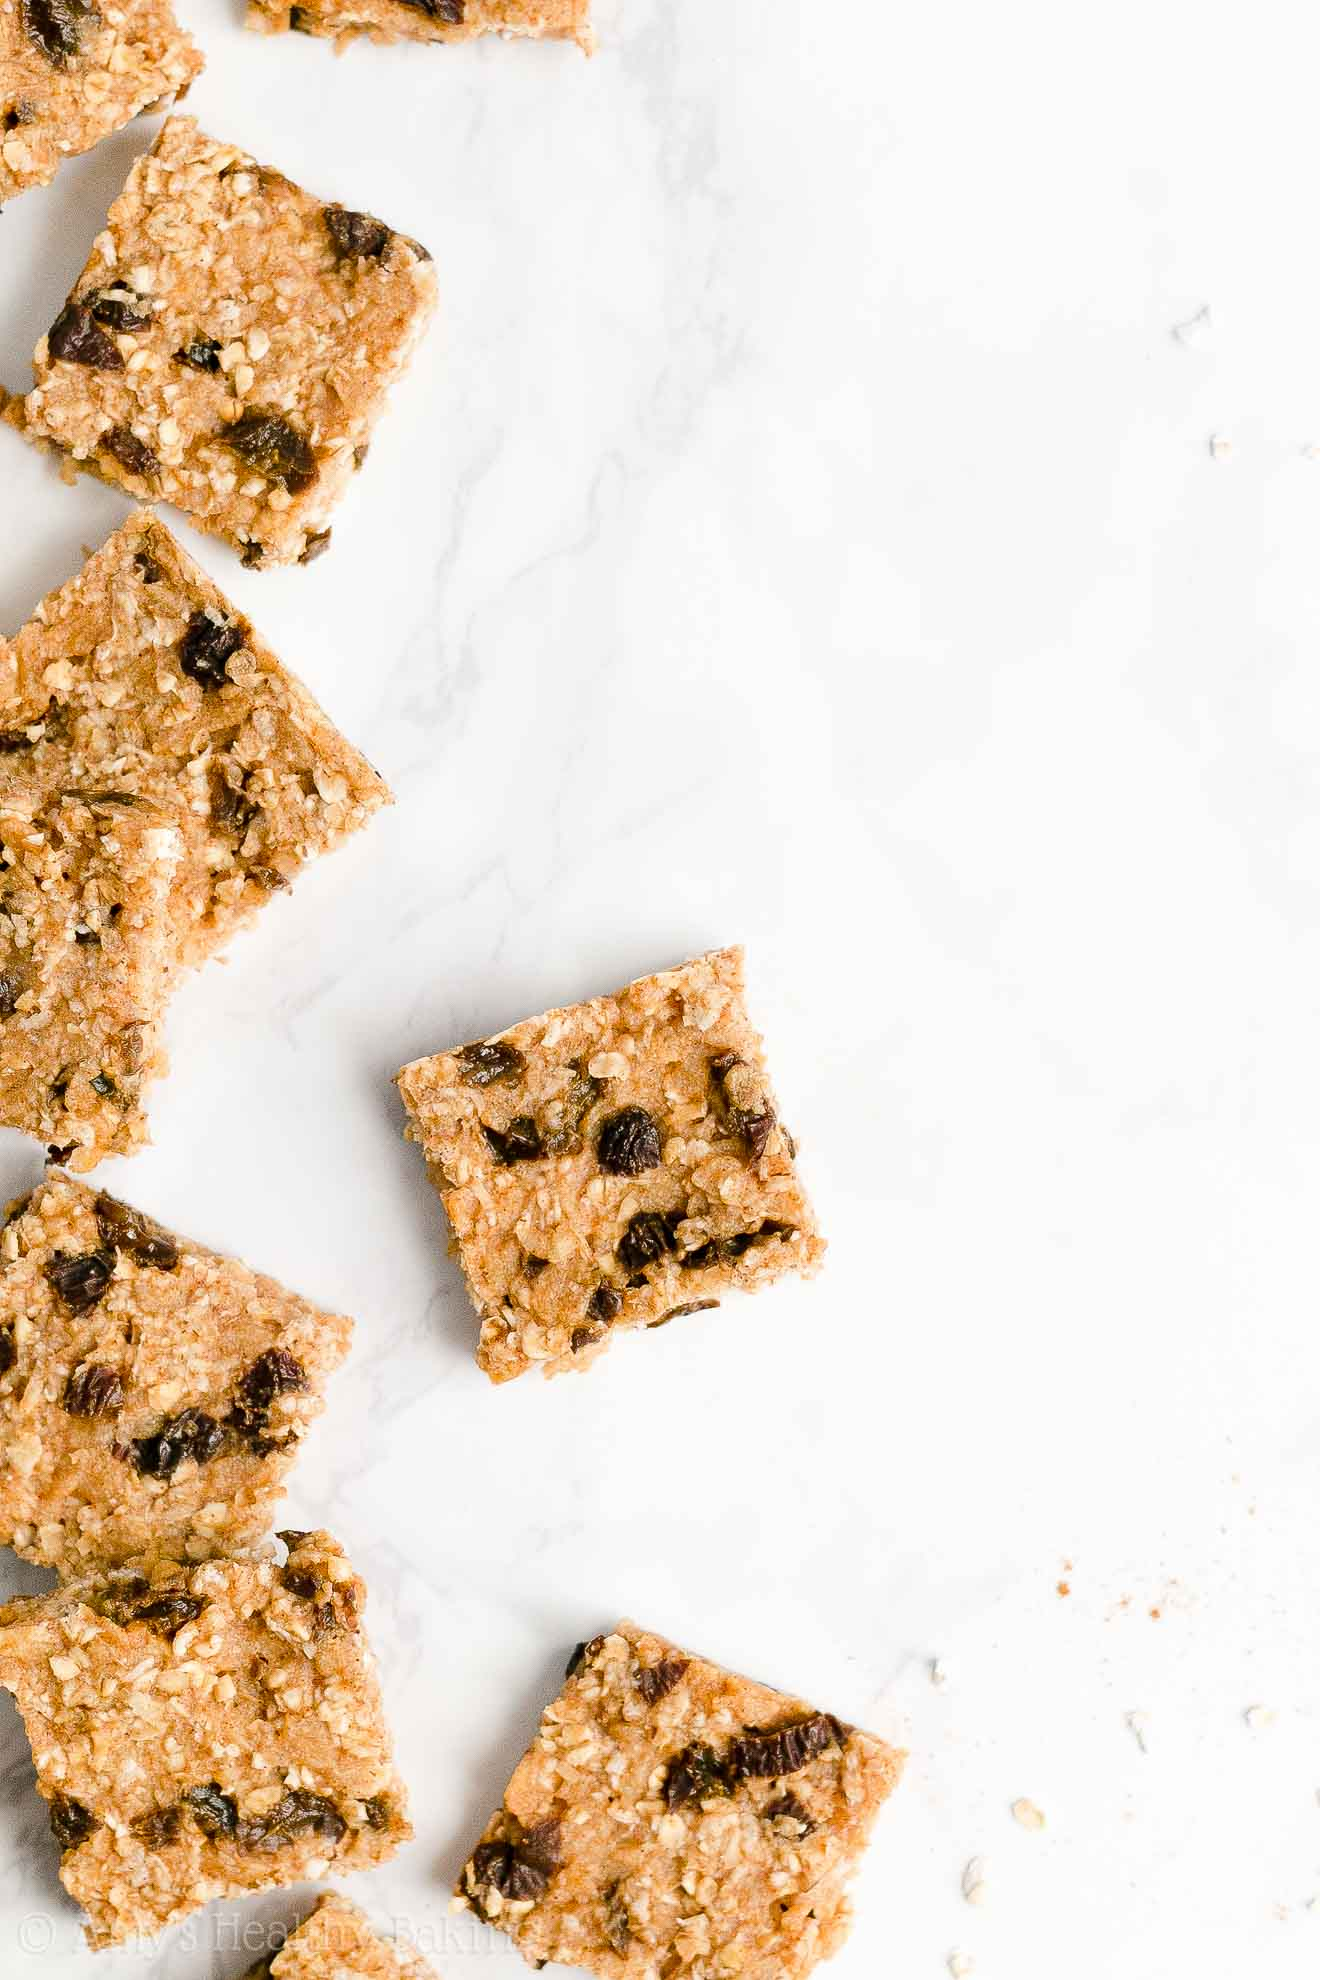 Easy Healthy Clean Eating Homemade Low Fat Oatmeal Raisin Granola Bars